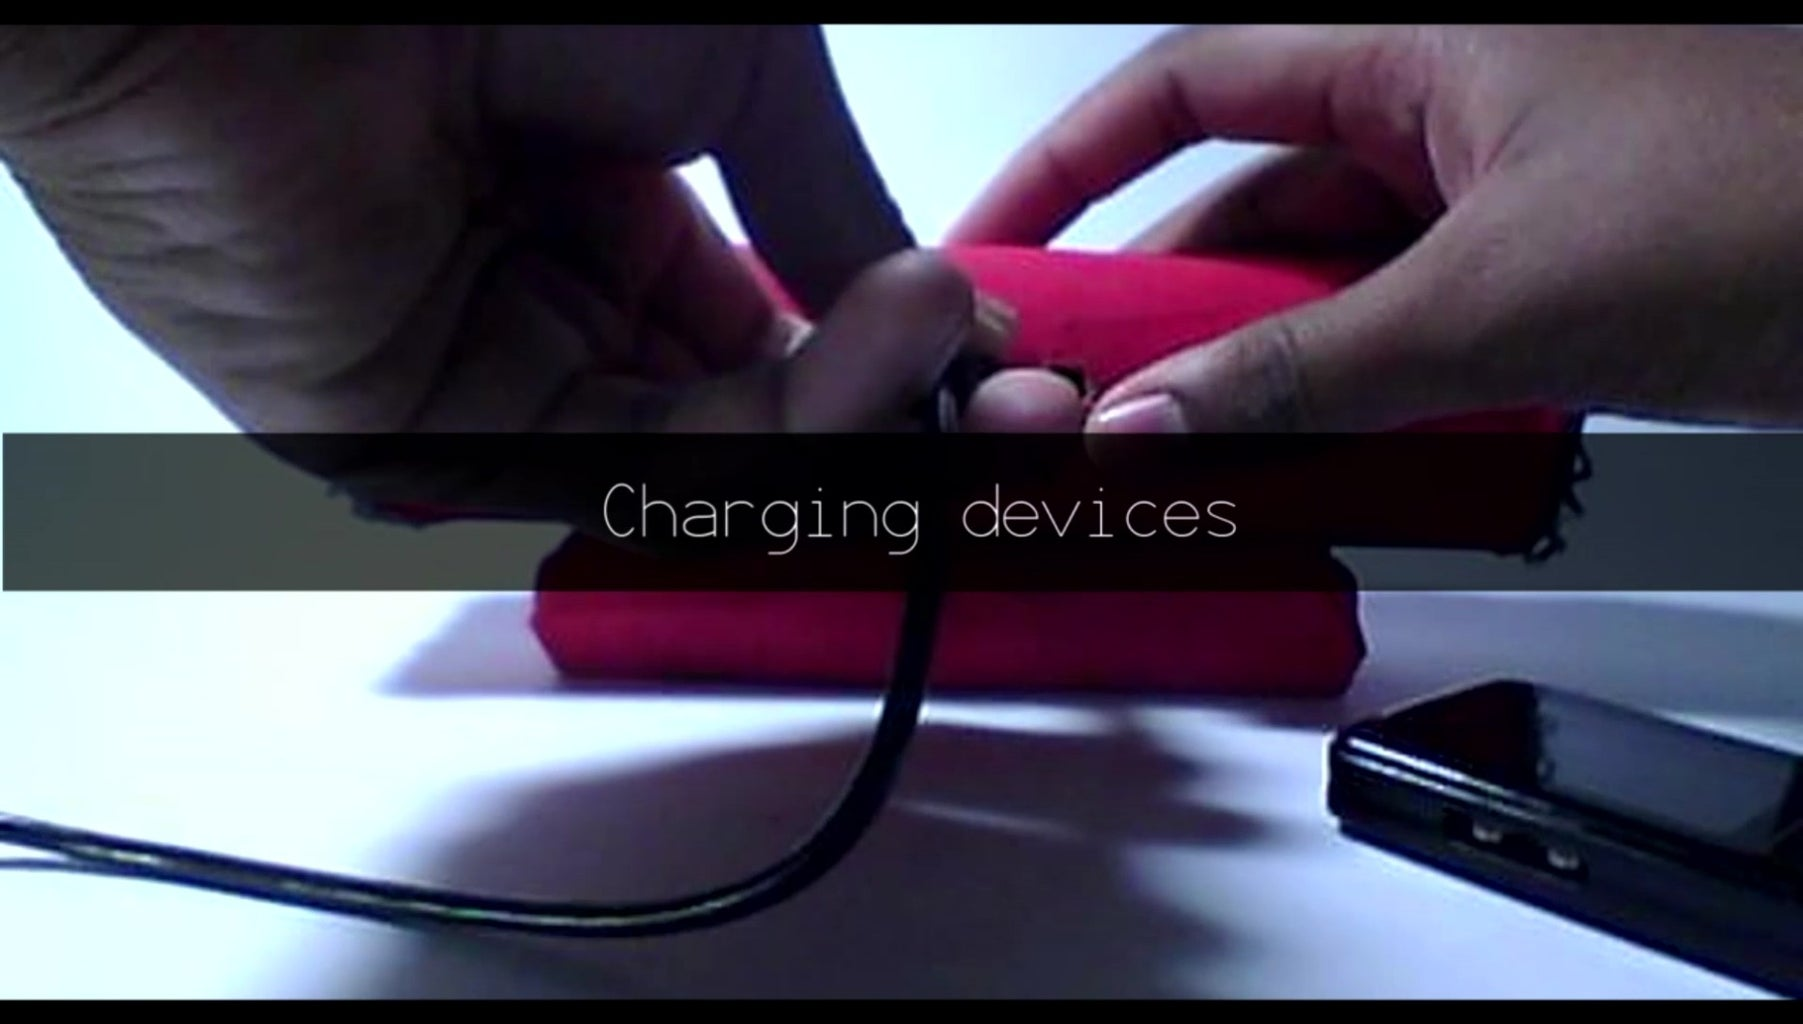 Charging 5v Devices...